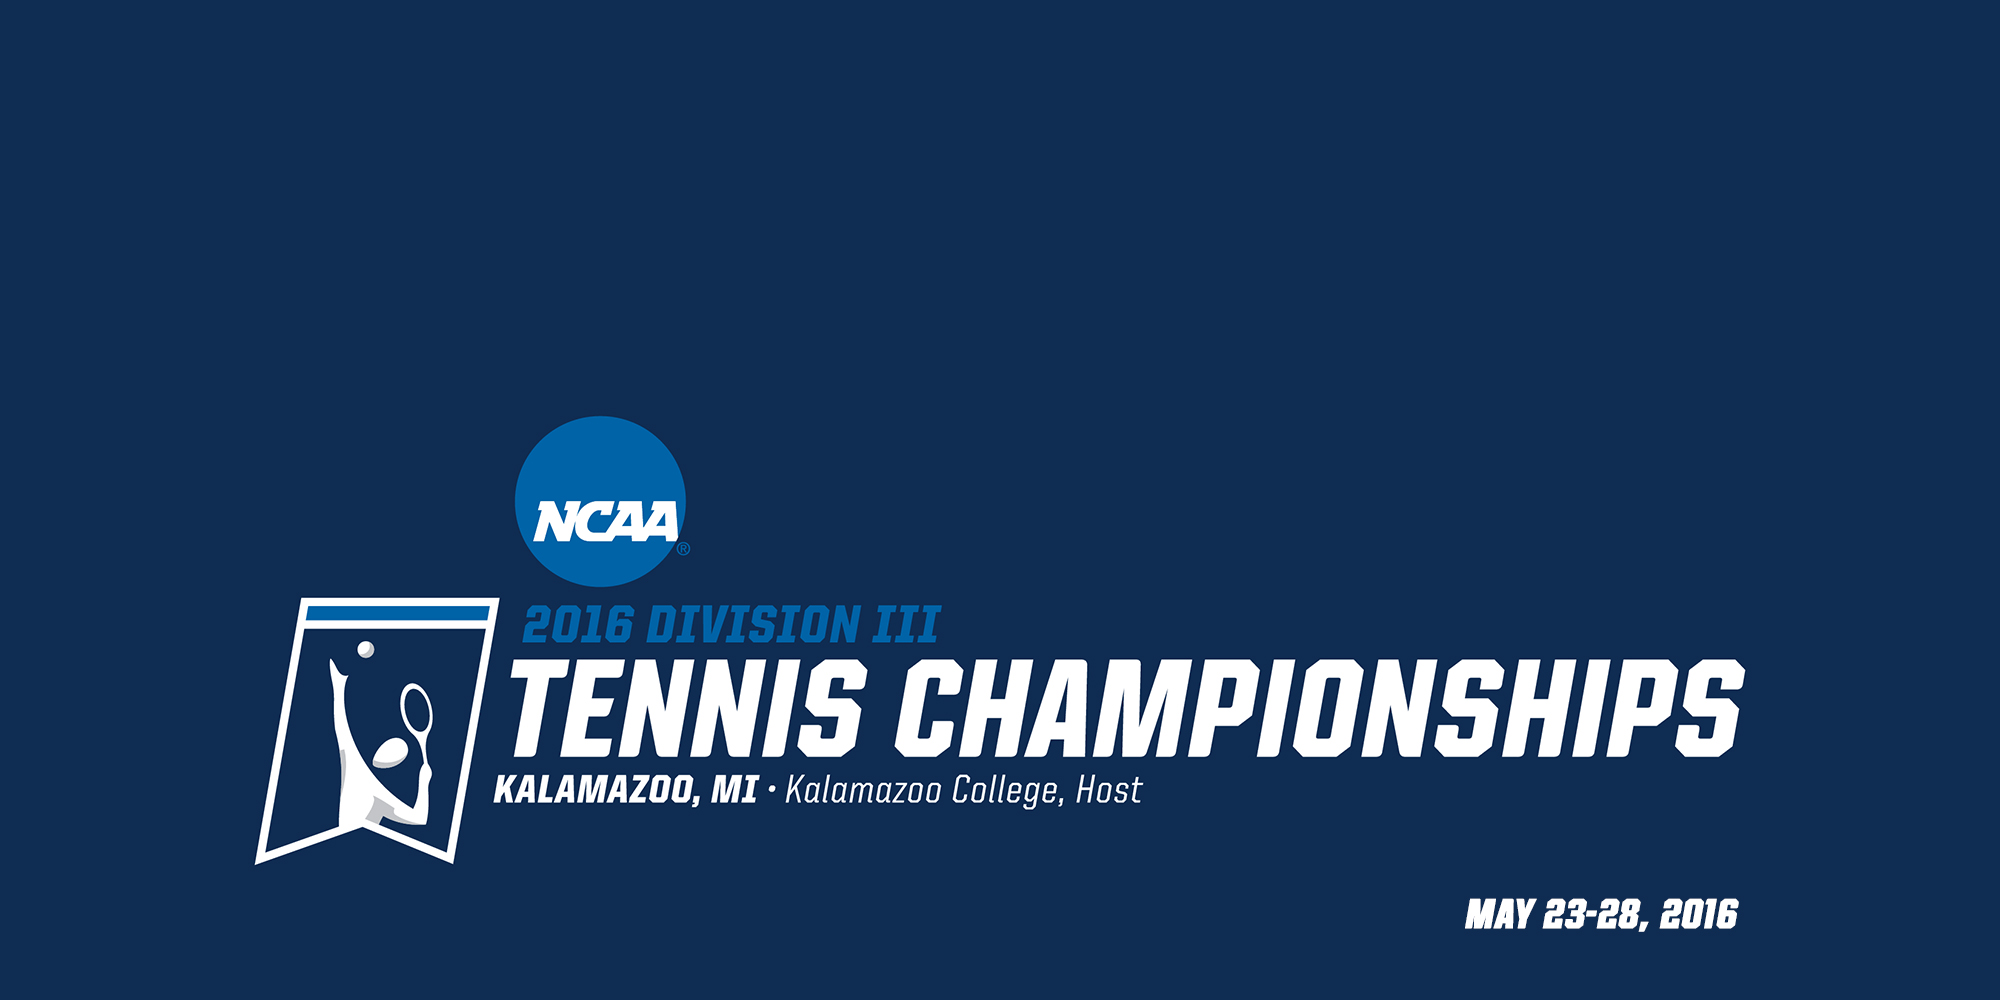 2016 NCAA Division III Tennis Championships in Kalamazoo, Michigan